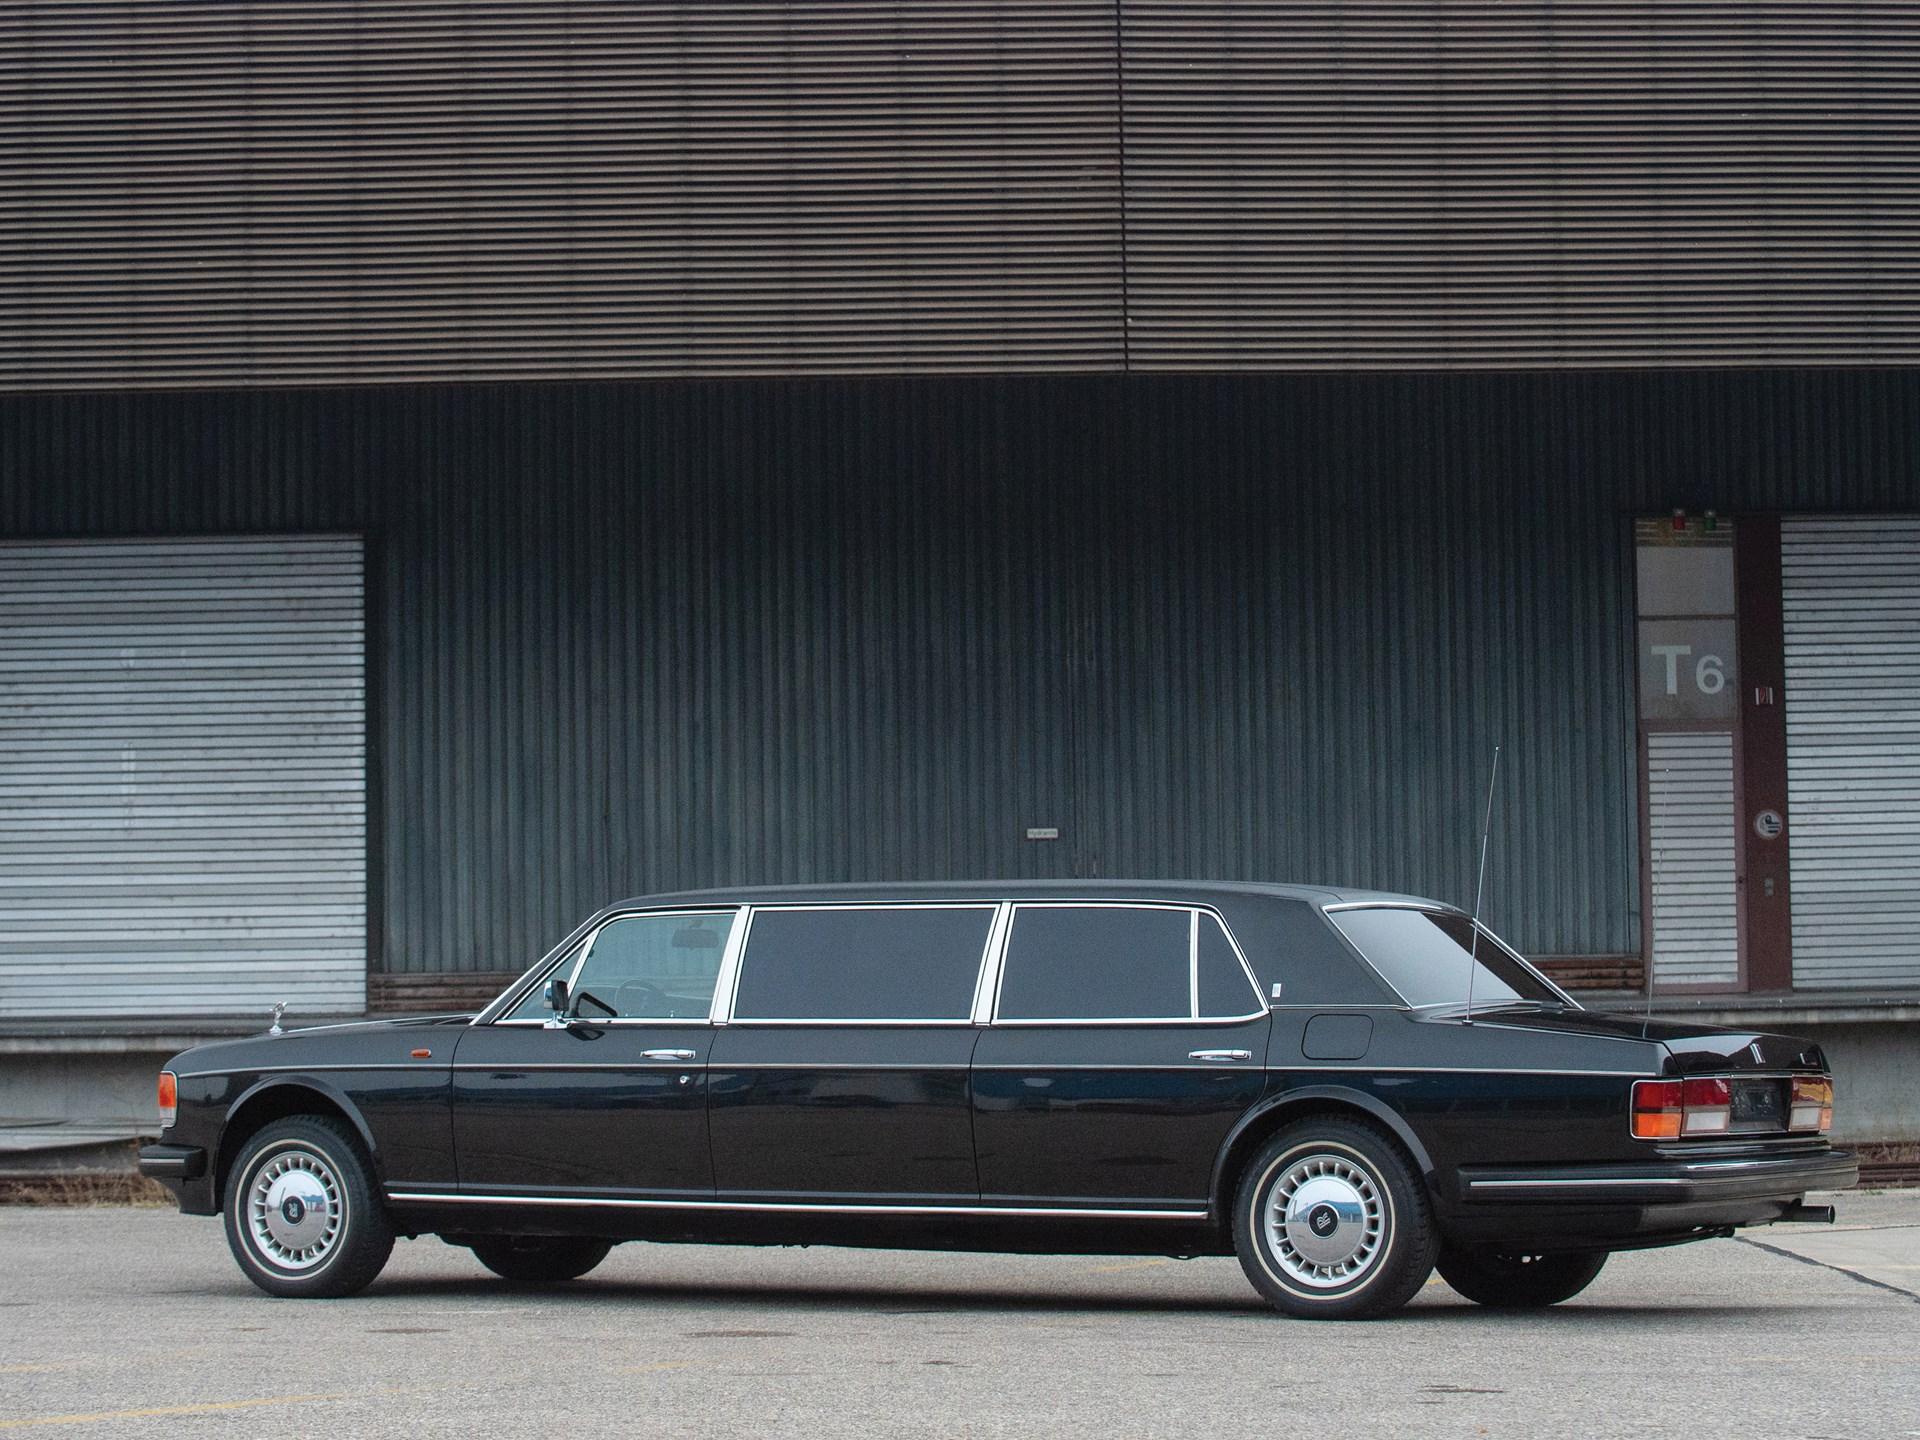 RM Sotheby's - 1987 Rolls-Royce Silver Spur Limousine ... on